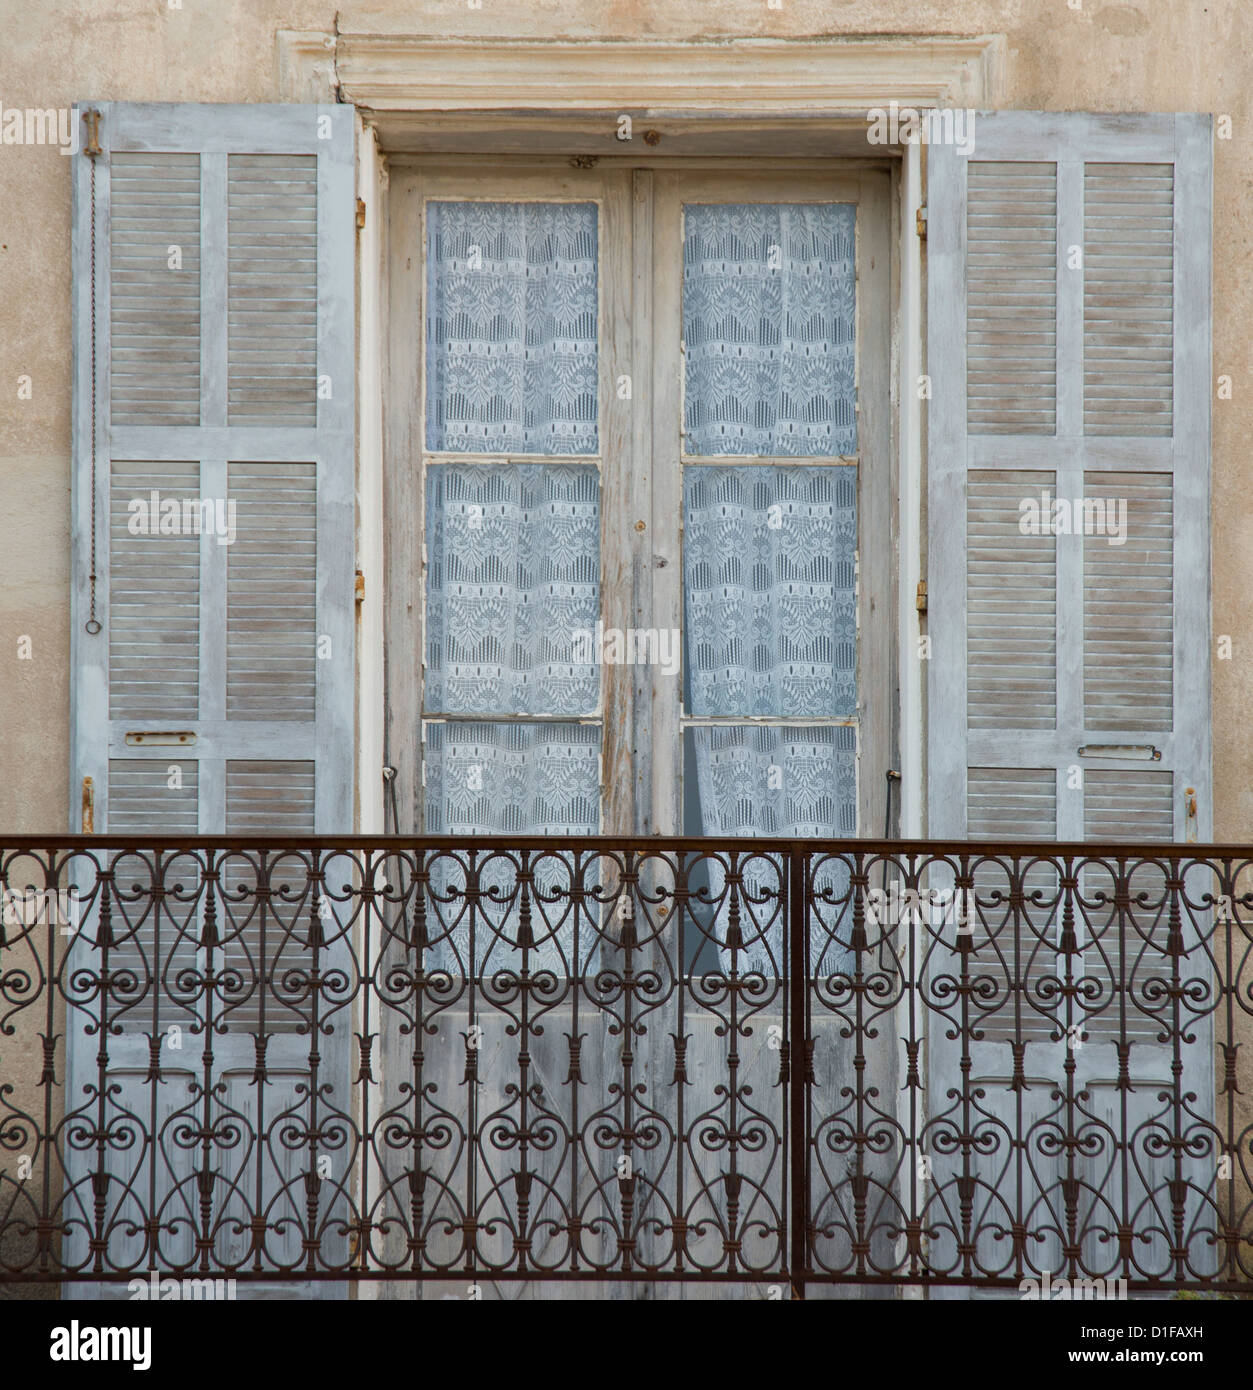 An old window, balcony and curtains in the picturesque village of Aregno in the inland Haute Balagne region, Corsica, - Stock Image